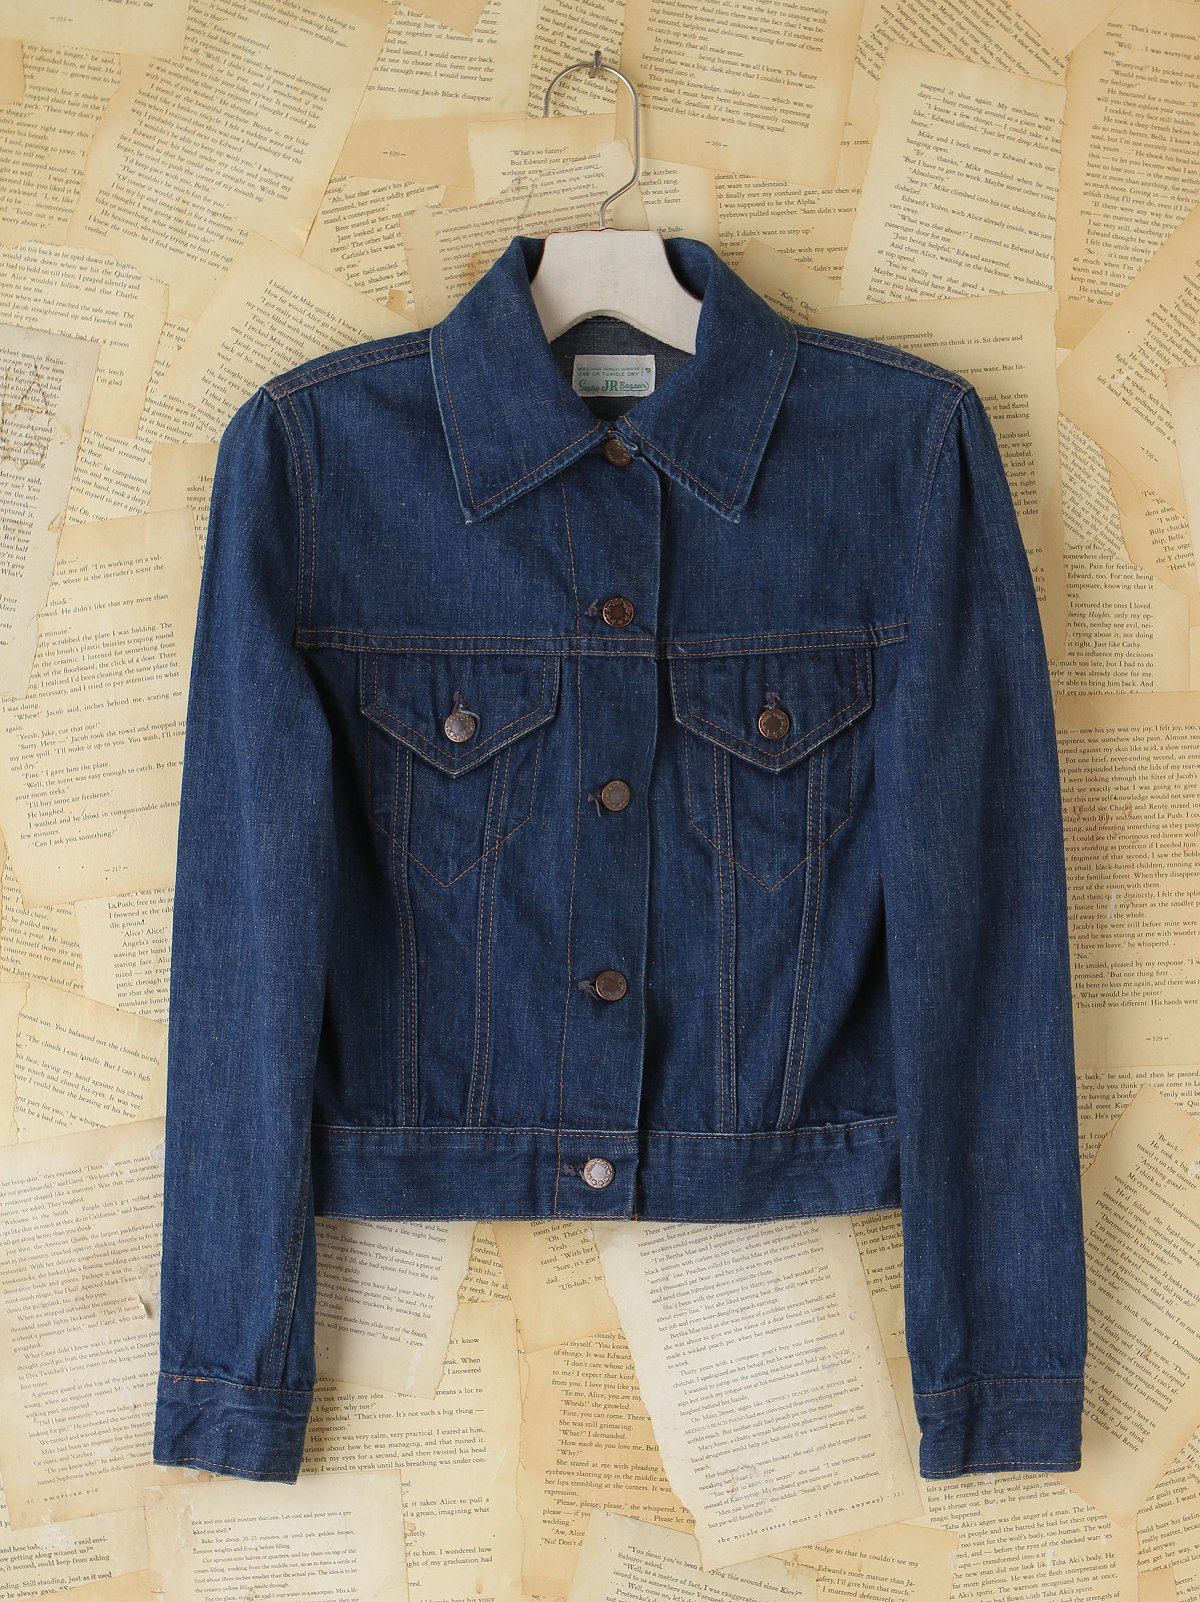 Vintage Sears Denim Jacket